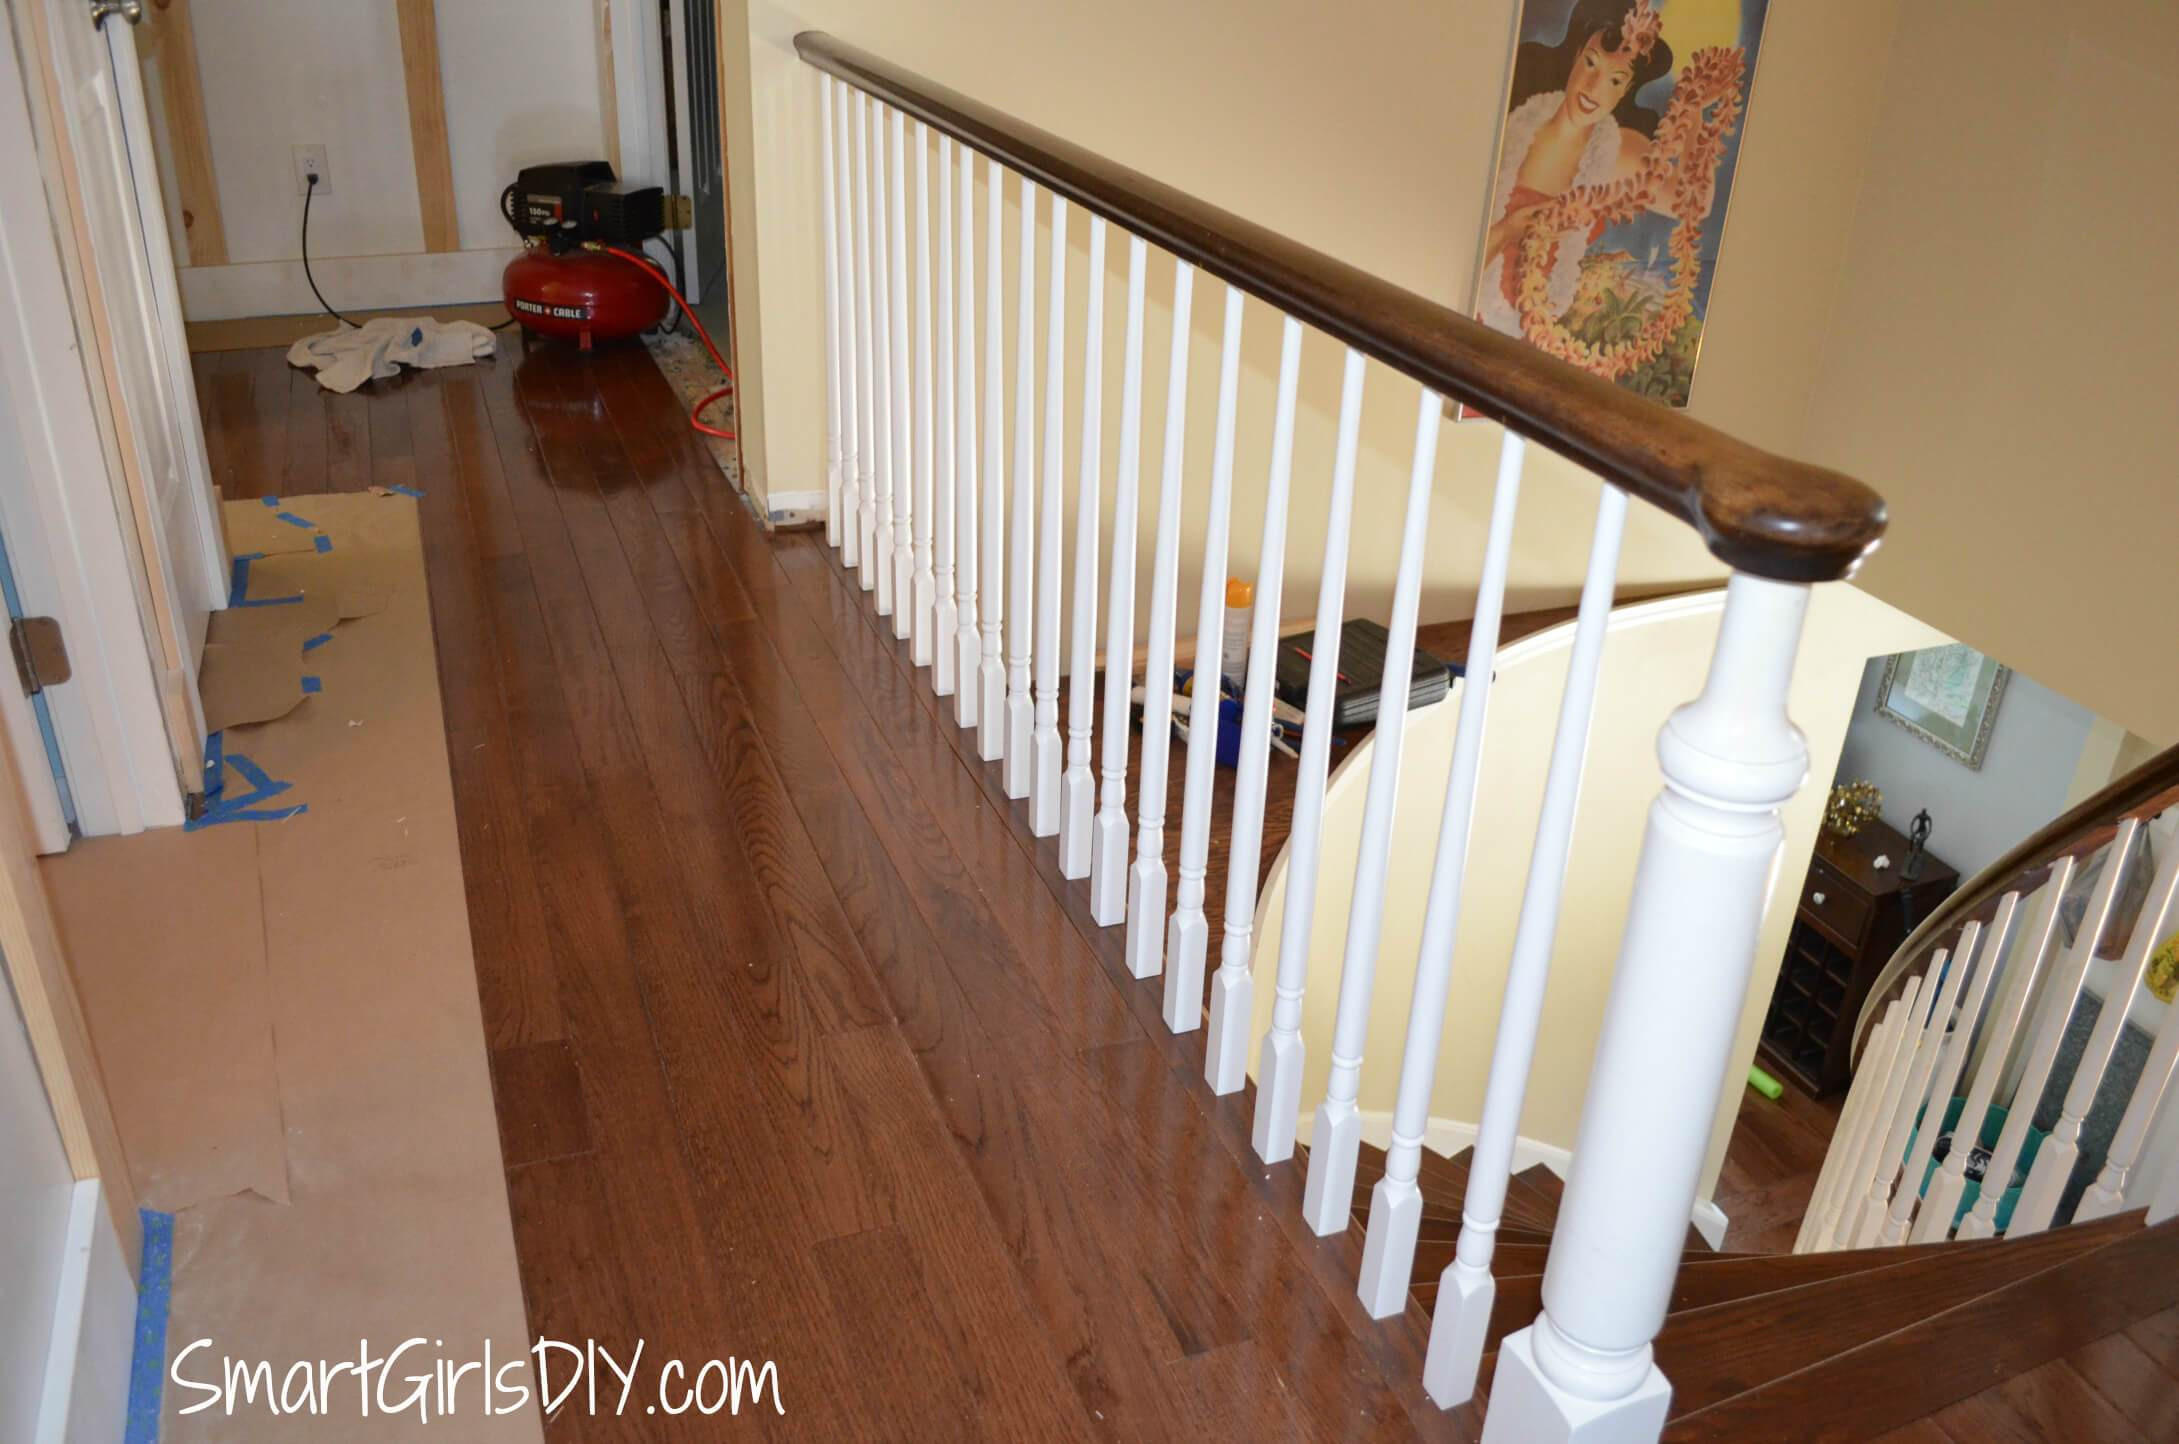 how to install hardwood flooring in a hallway of upstairs hallway 1 installing hardwood floors pertaining to upstairs hallway 2 hardwood spindles